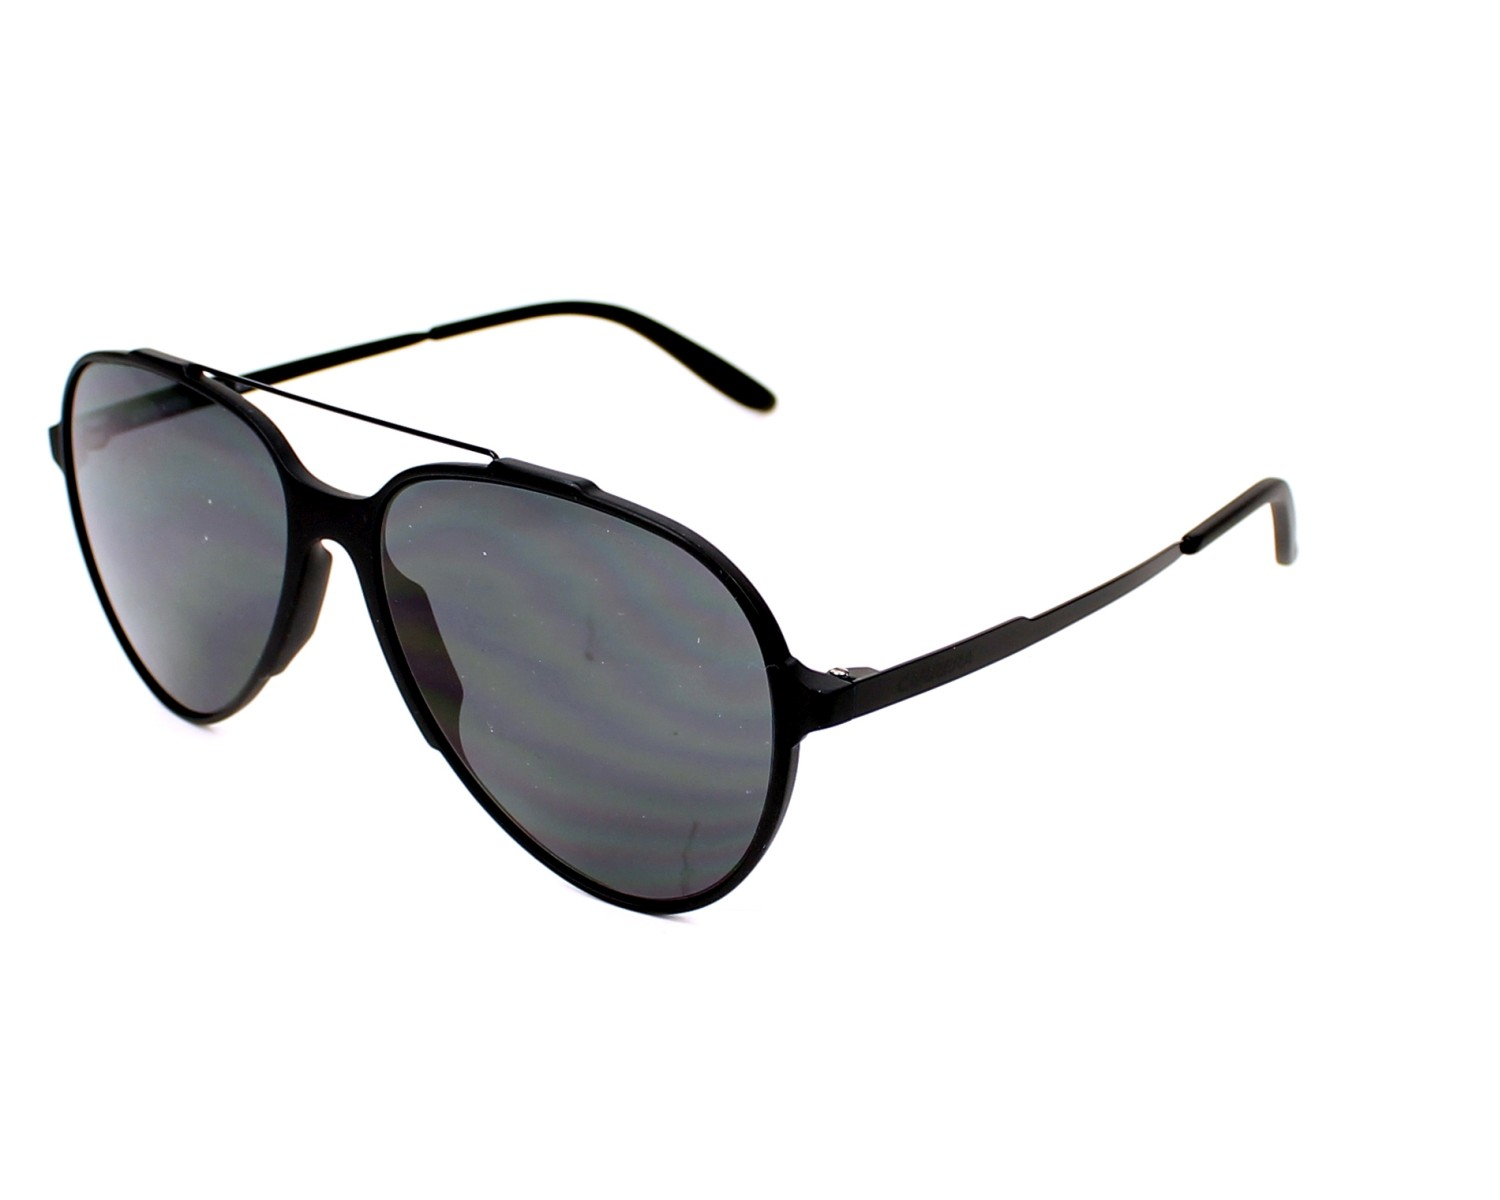 ee43894b5779 Sunglasses Carrera CARRERA-118-S GTN/P9 57-16 Black profile view